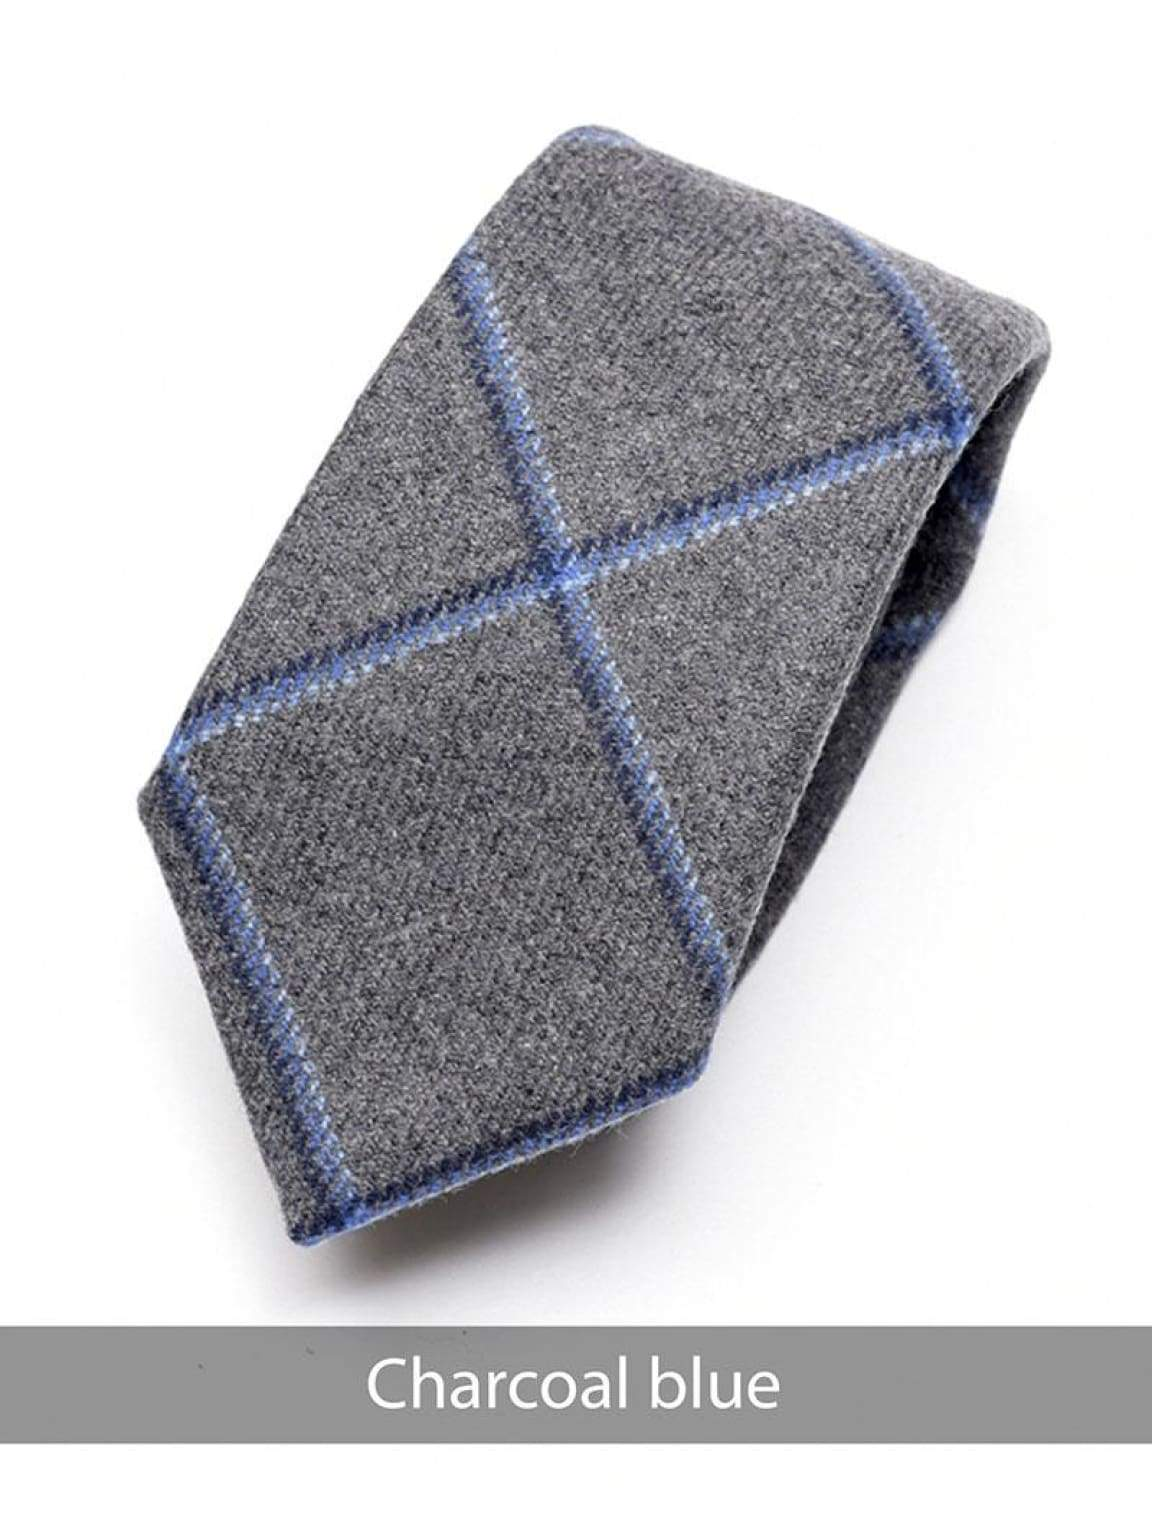 Heirloom Charcoal Mens Blue Checked Tie - Accessories